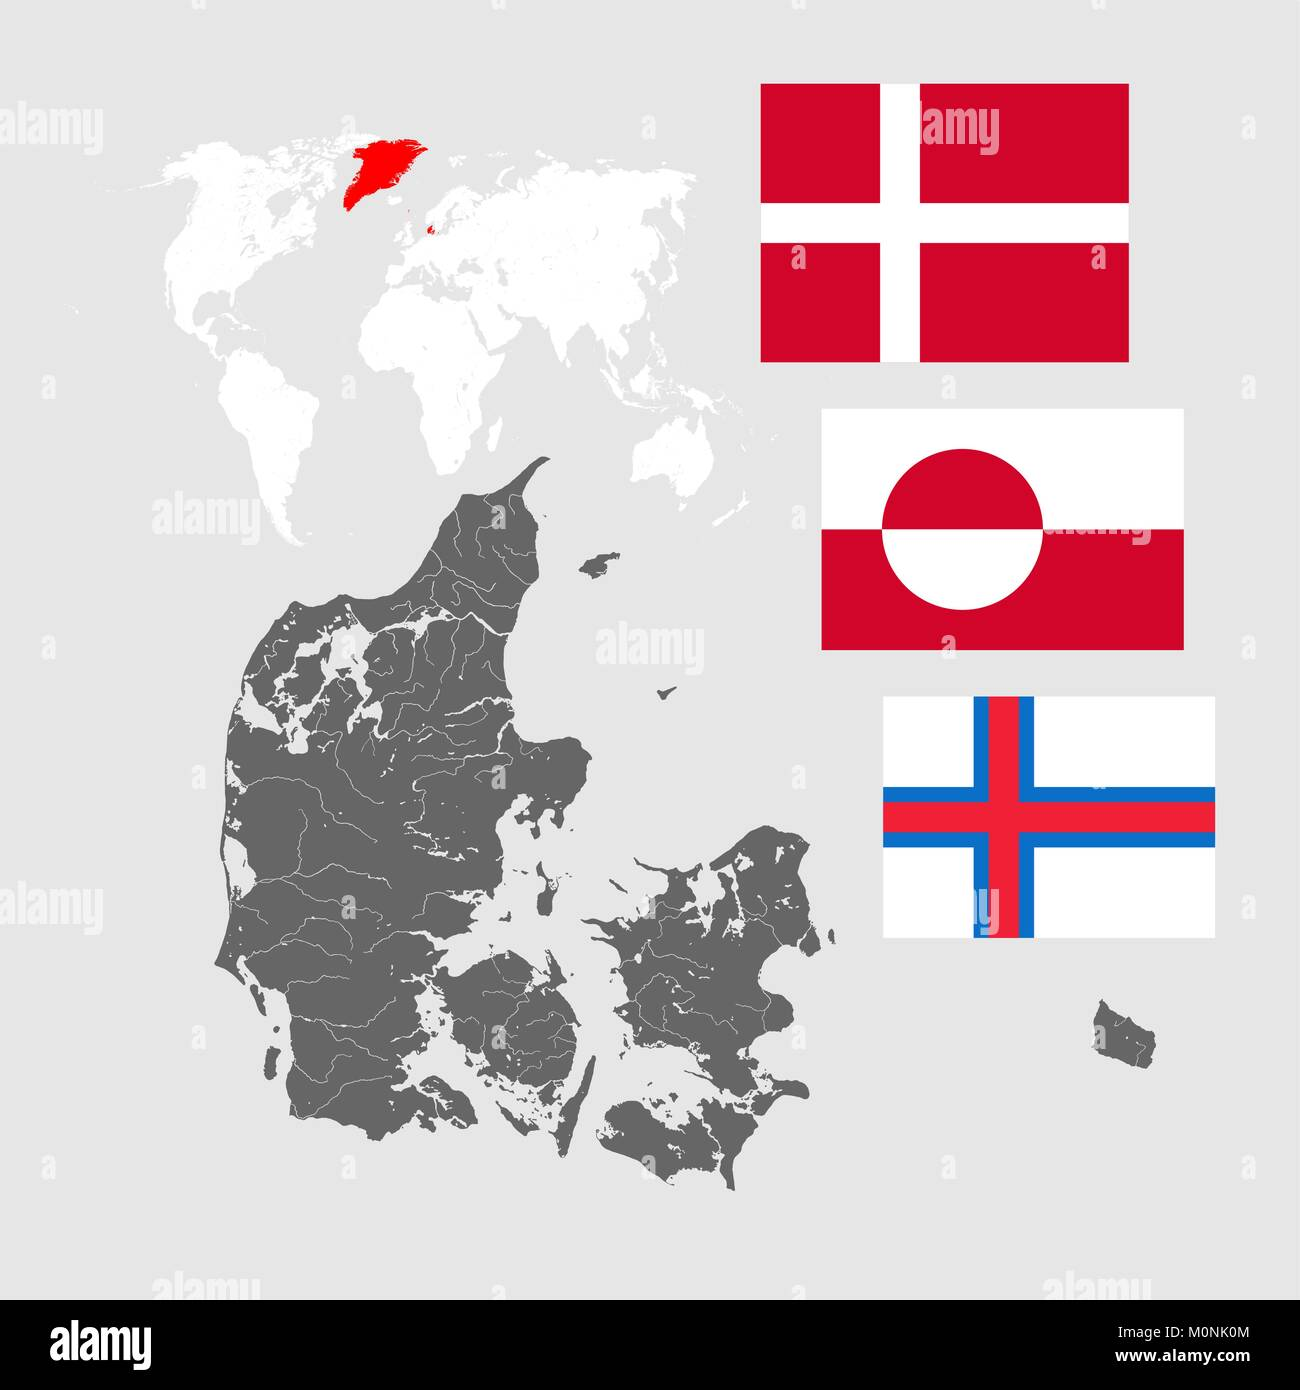 Map of Denmark with lakes and rivers, world map and three flags - Flag of Denmark (Dannebrog), Flag of Greenland - Stock Vector